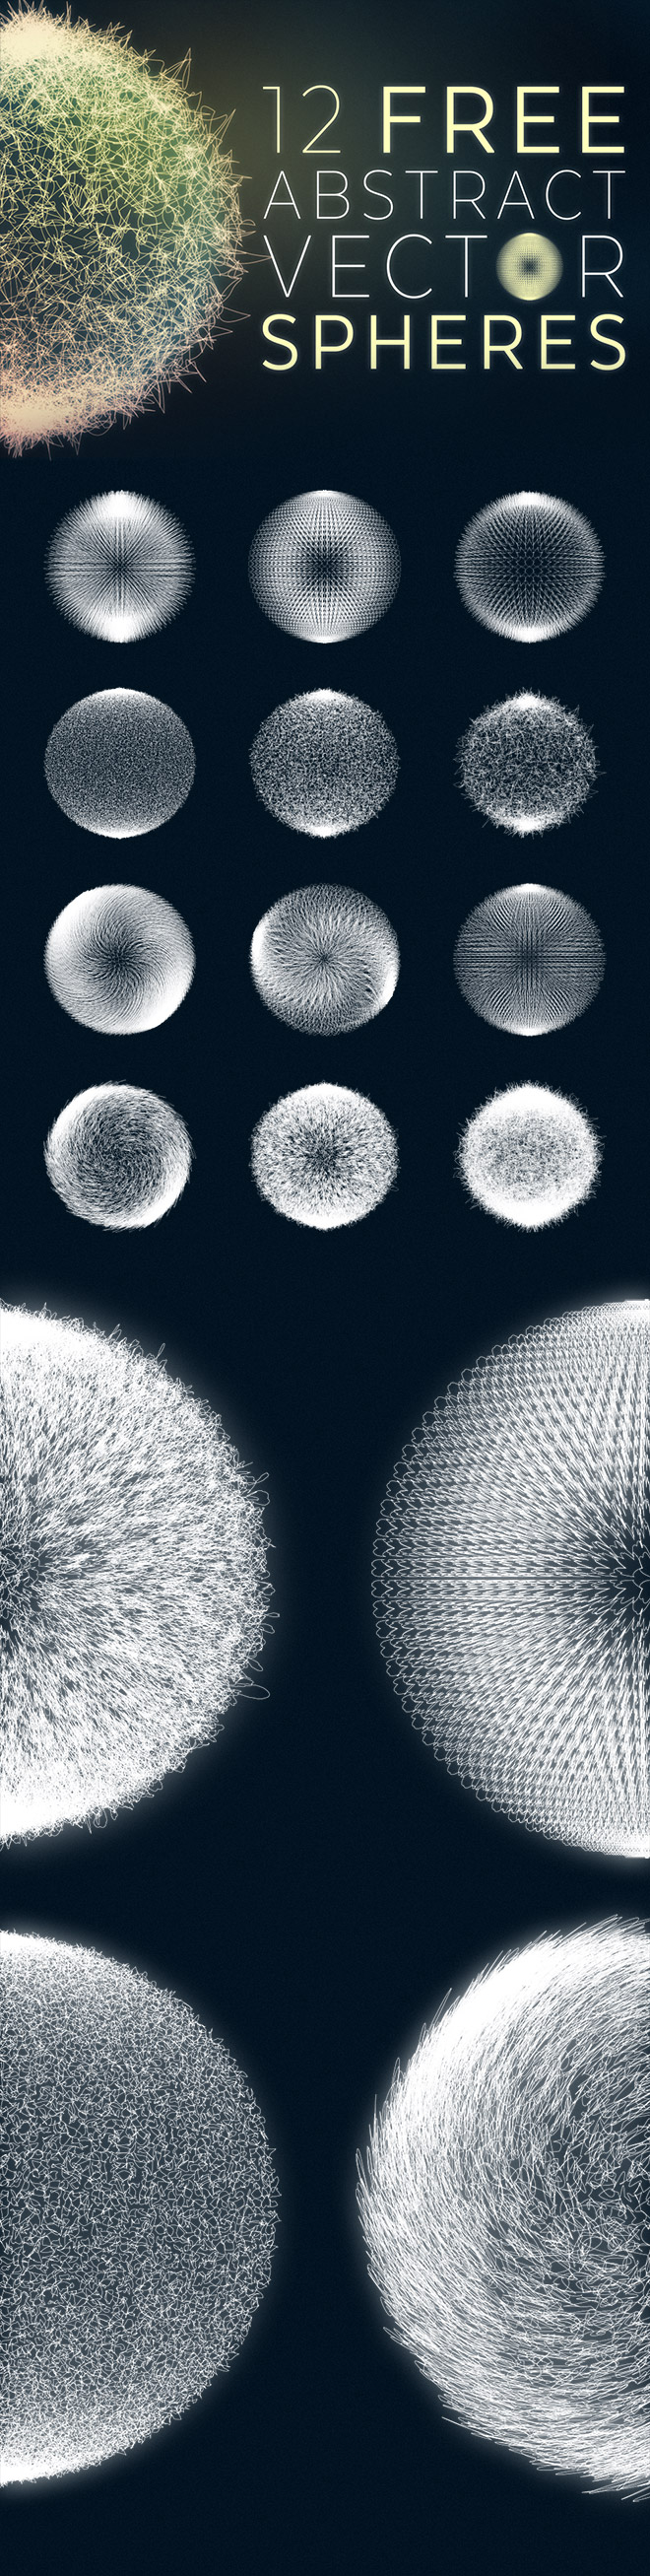 12 Free Abstract Vector Spheres